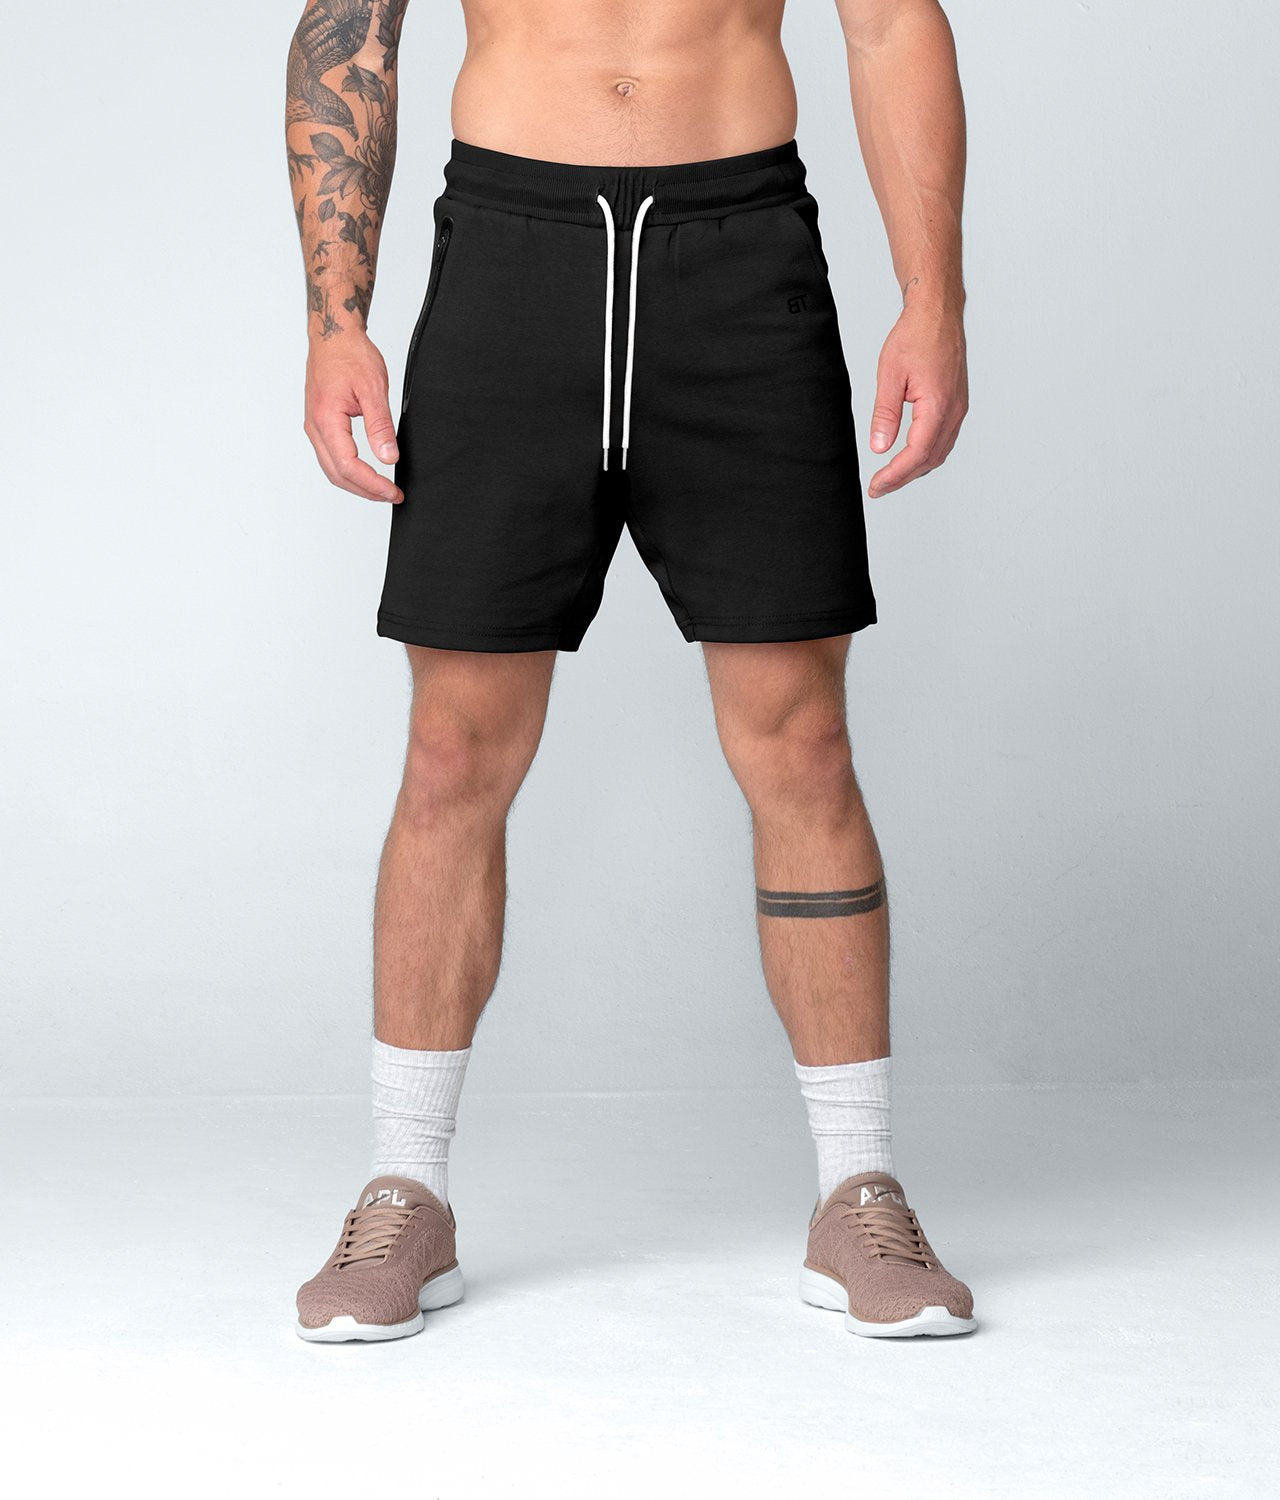 Born Tough United Kingdom Core Fit Zippered Stretch Leg Paneled Black Gym Workout Shorts for Men